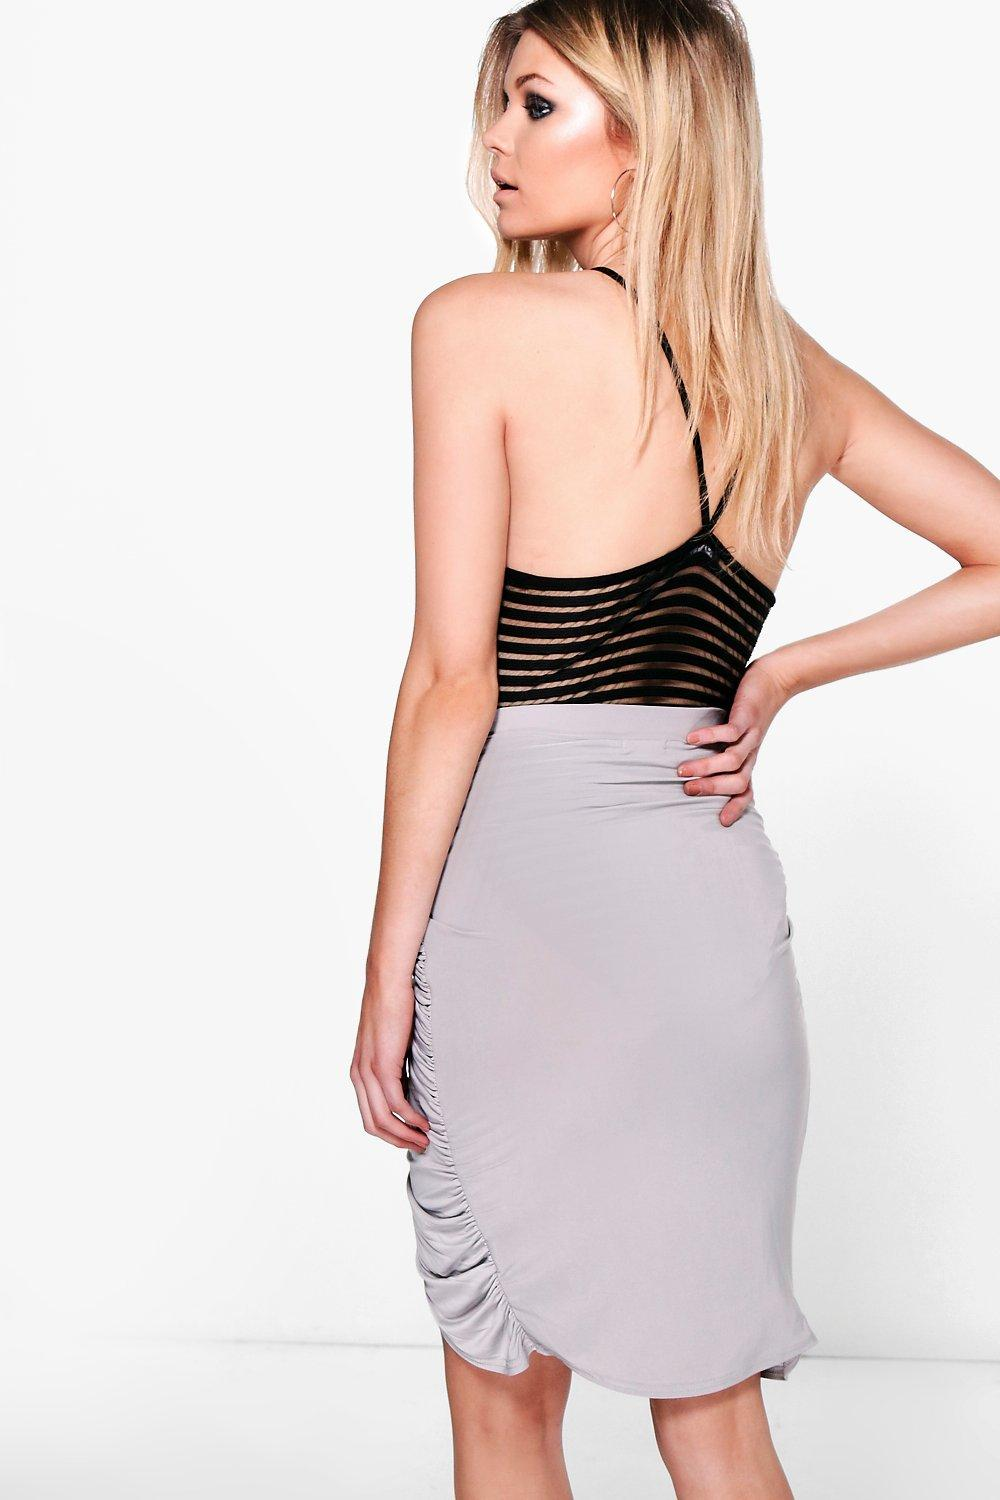 Petite-Skirts. Whether you're dressing for a casual or professional environment, petite skirts can provide you with the perfect look for any occasion.